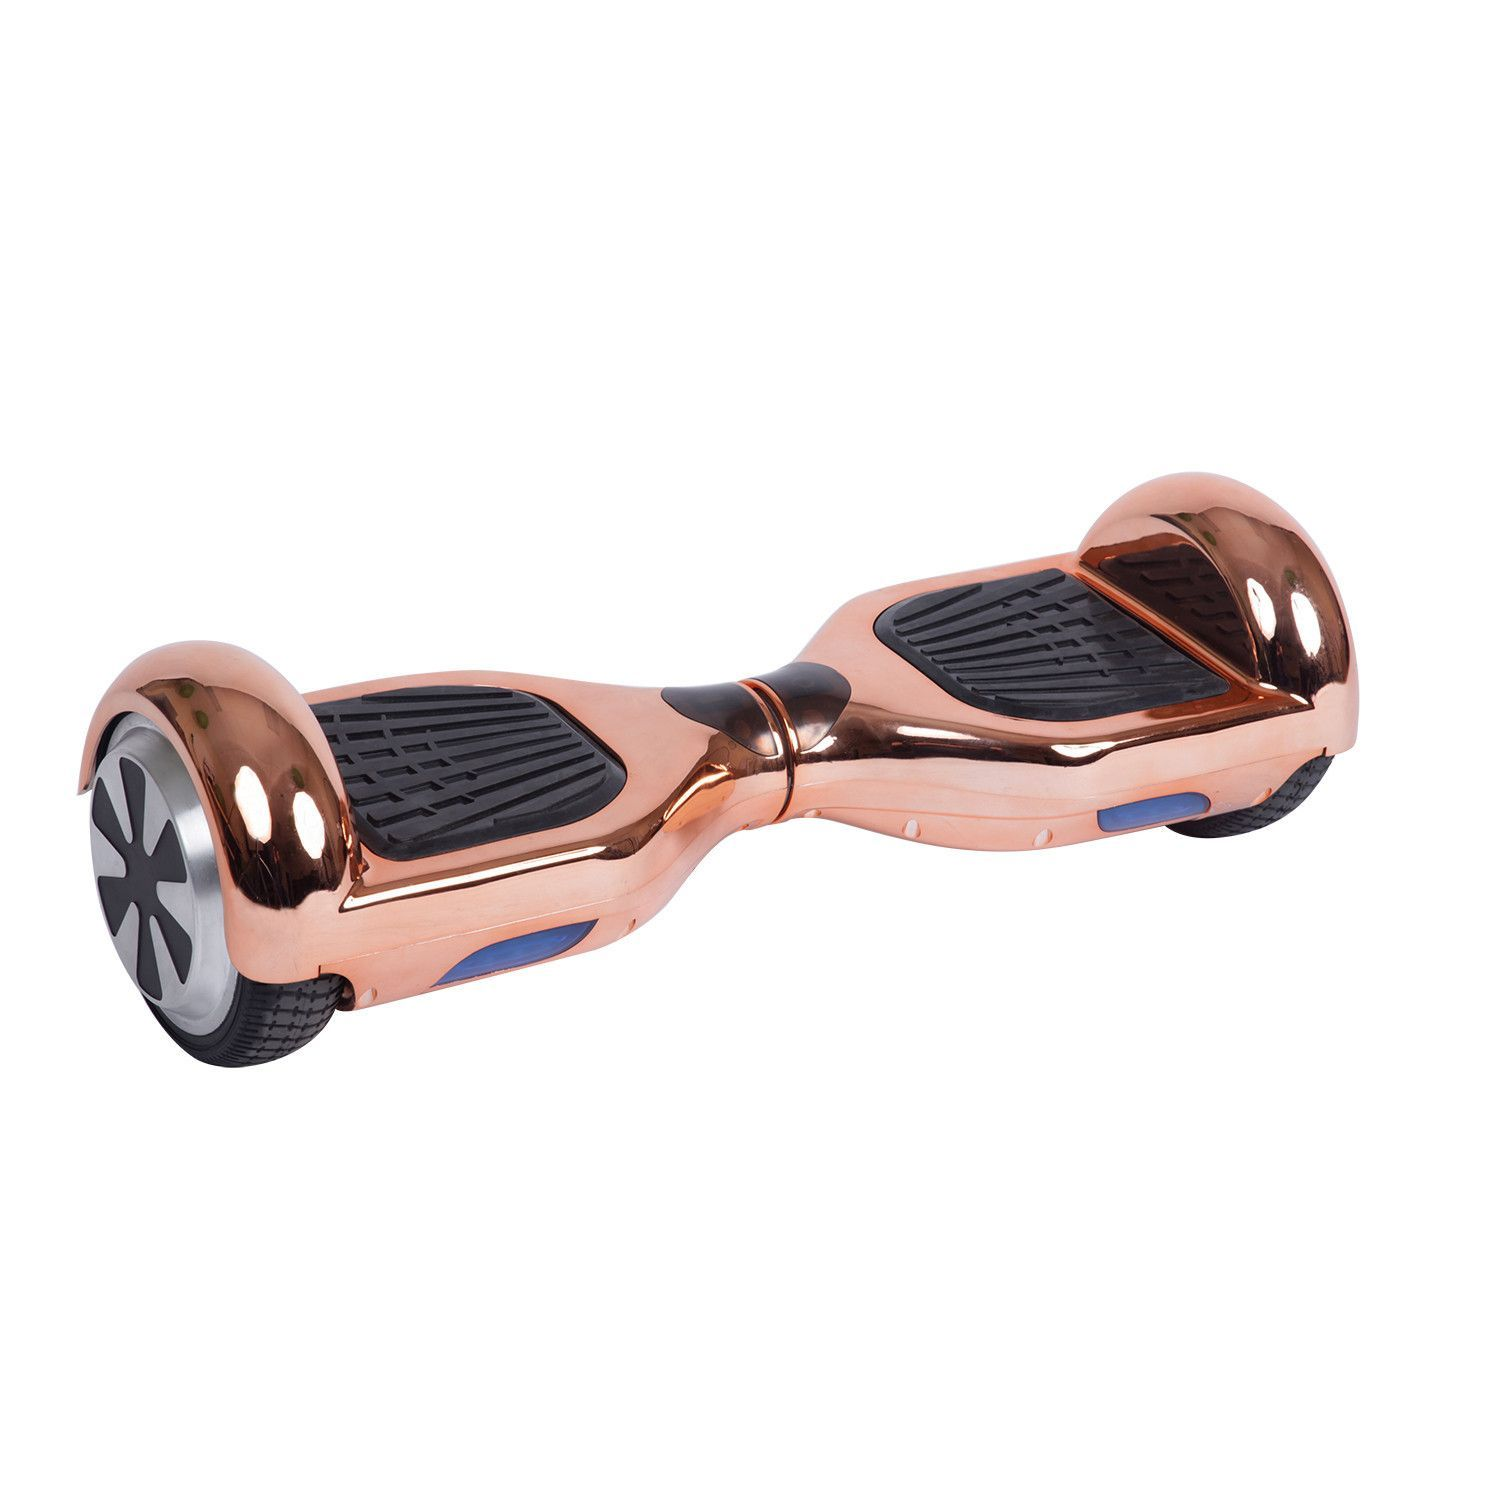 Self Balancing Hoverboard Chrome Rose Gold Lifetime Warranty